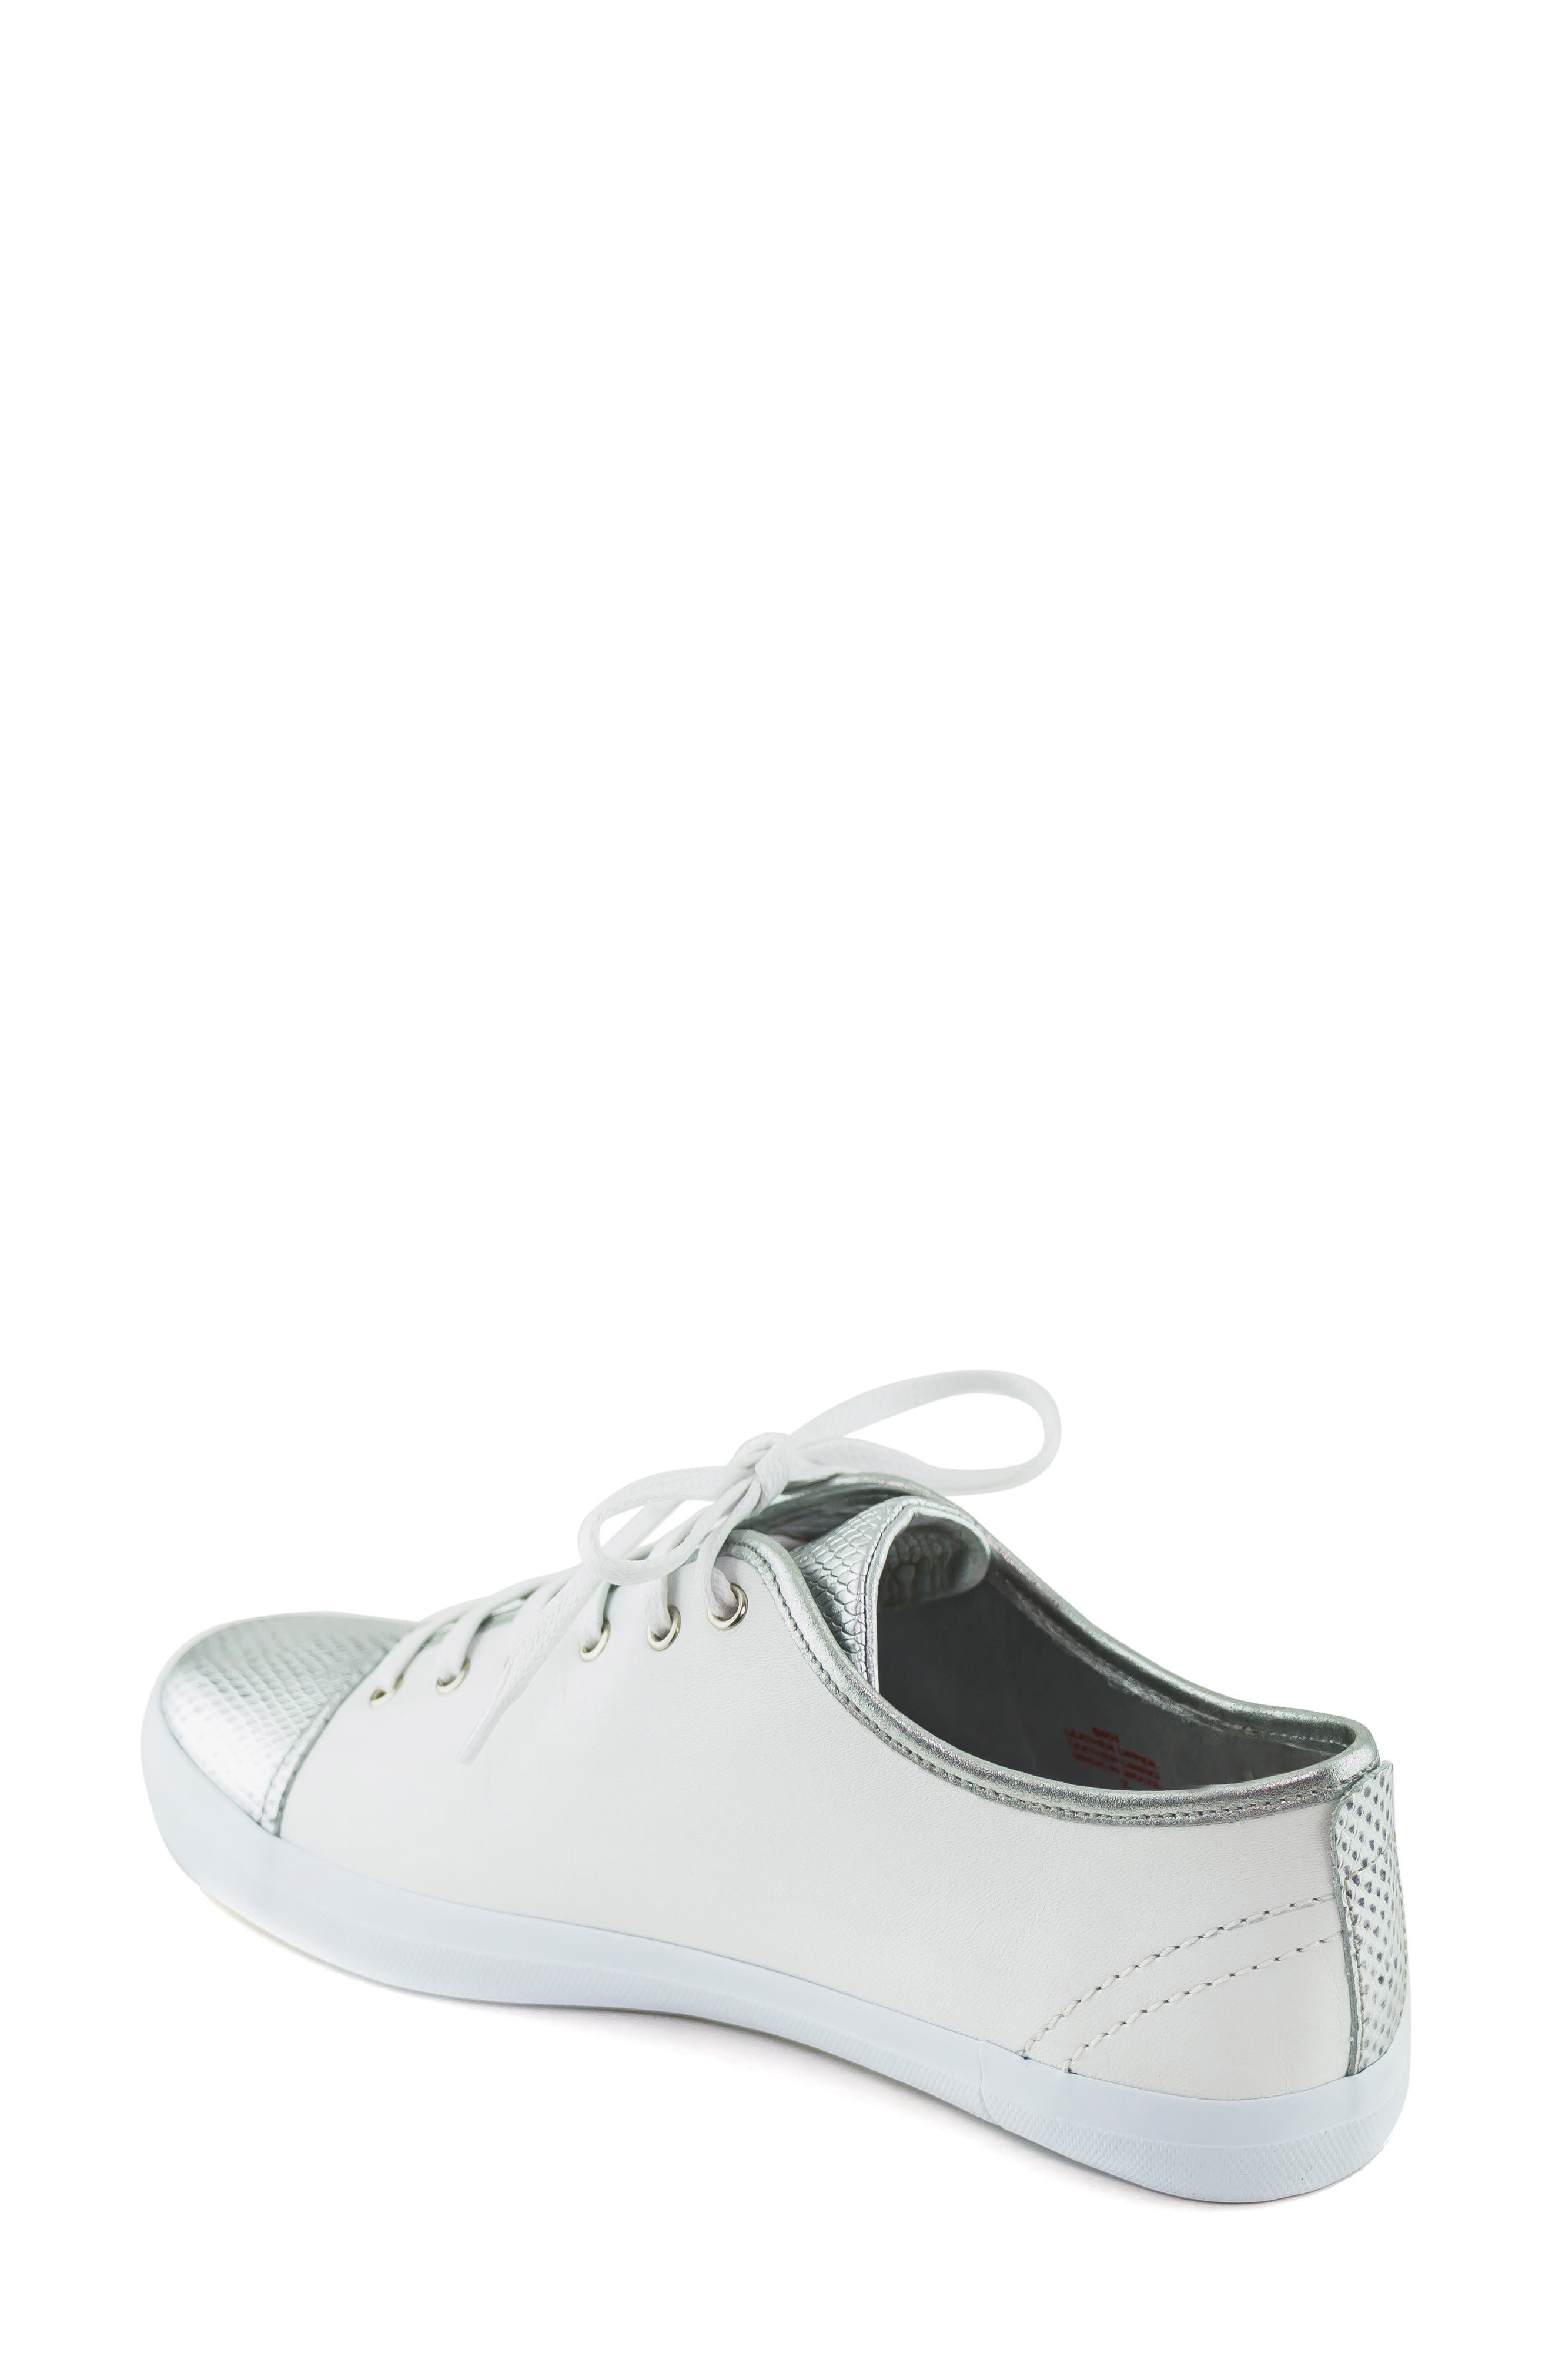 MARC JOSEPH NEW YORK, Bleecker Street Sneaker, Alternate thumbnail 2, color, WHITE/ GIPSY SILVER LEATHER